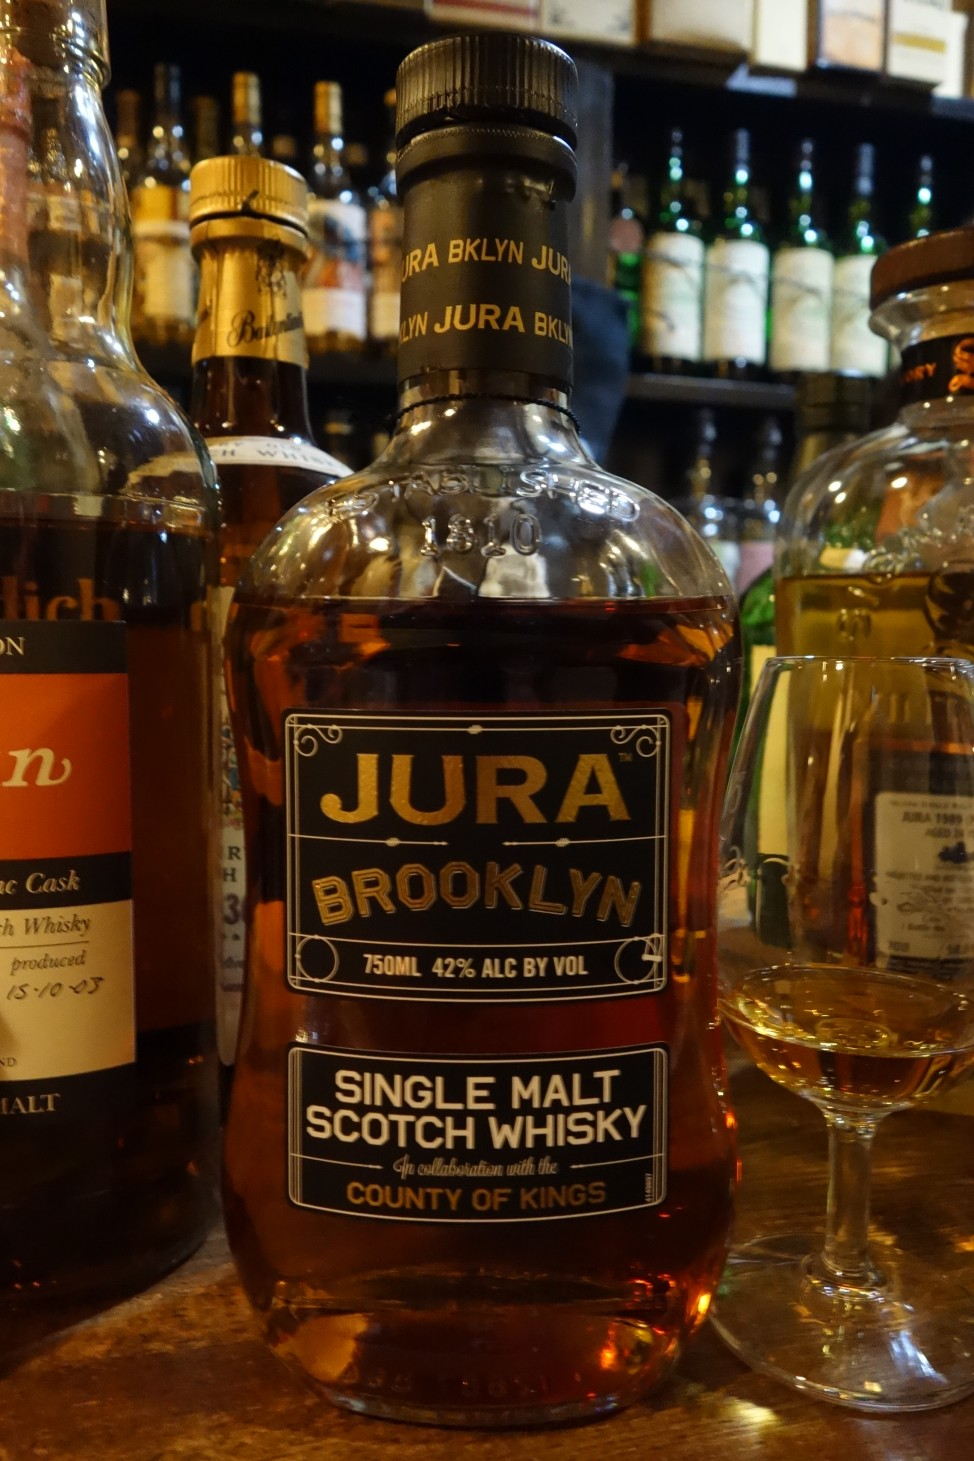 "ISLE OF JURA OB ""BROOKLYN"" In collaboration with the COUNTY OF KINGS"